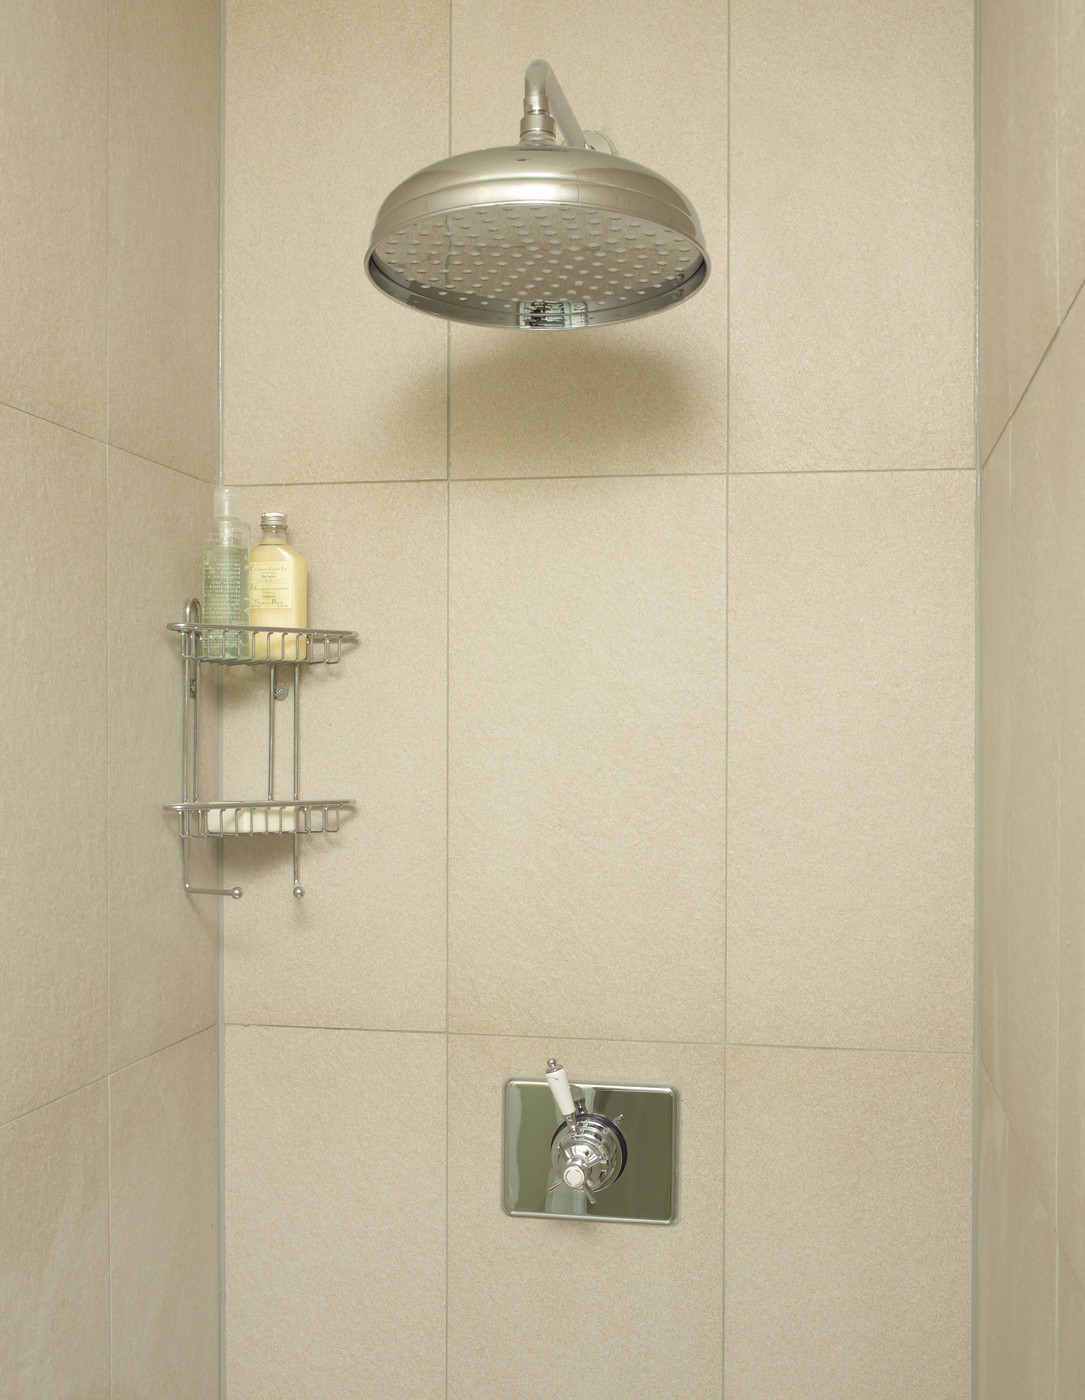 Large shower head in a tiled shower